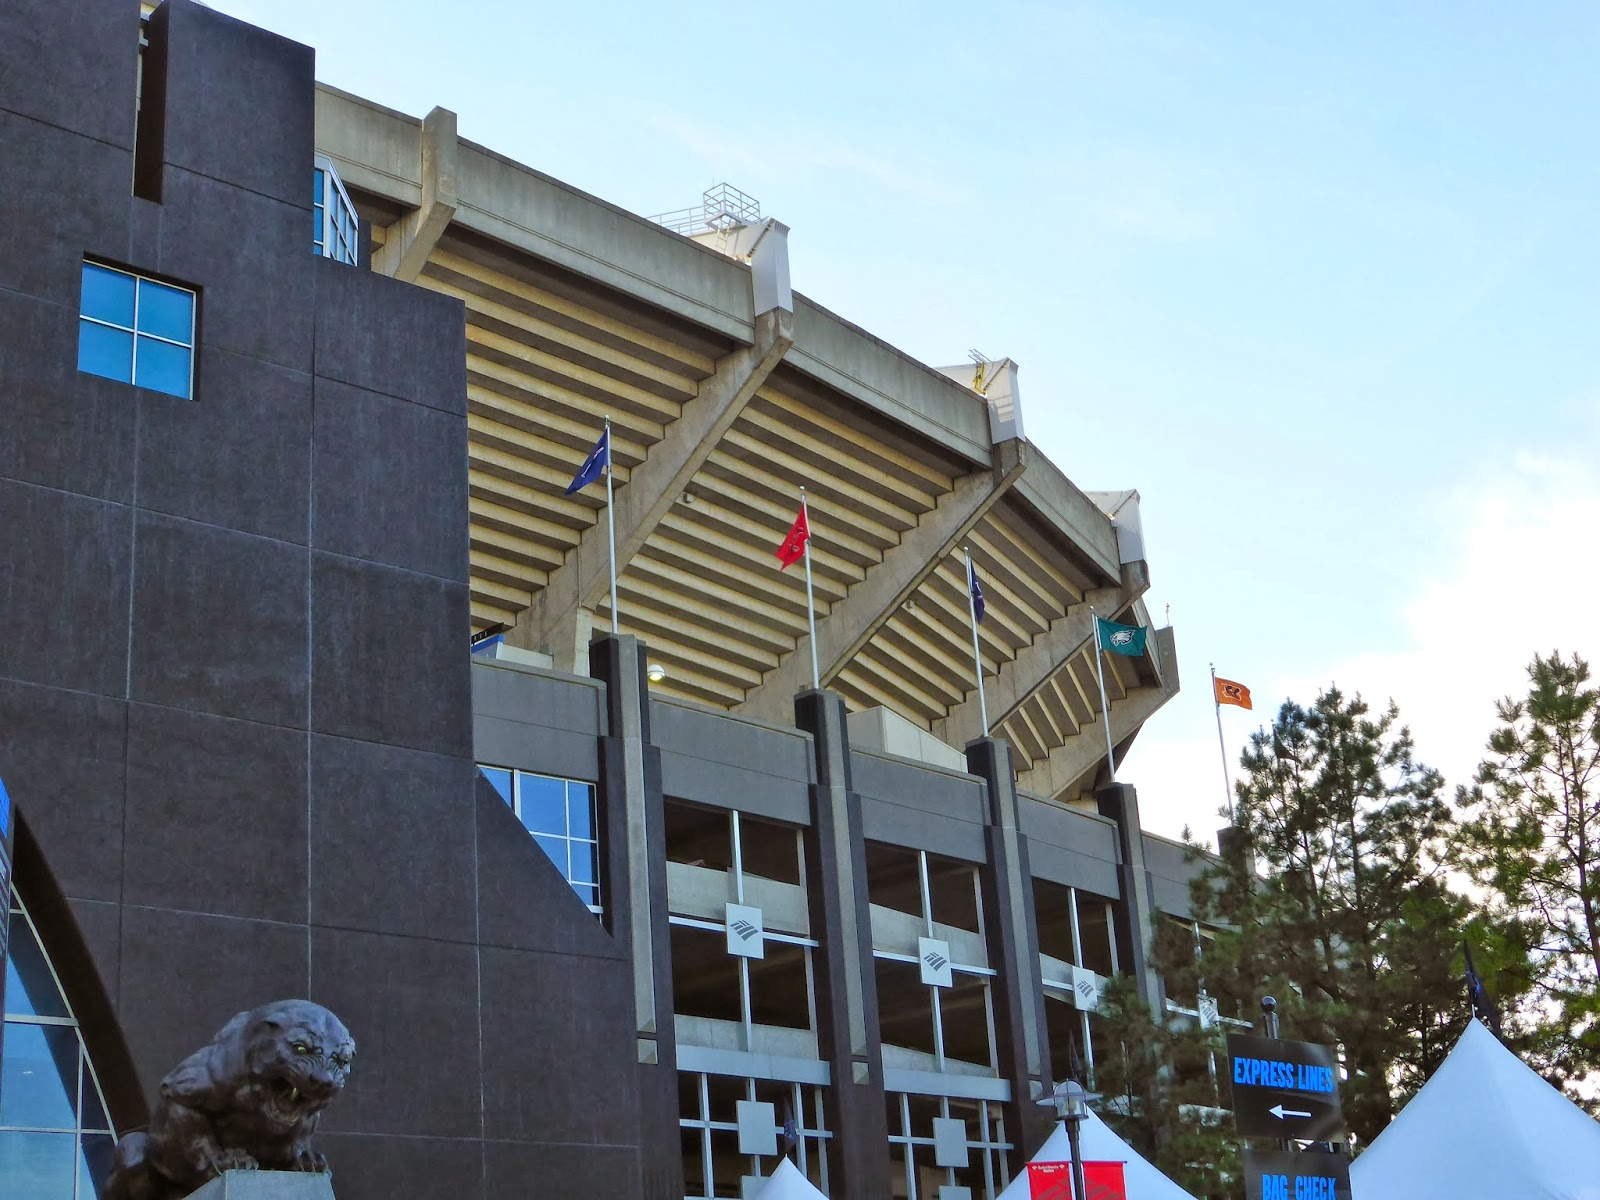 Sports Road Trips: New England Patriots 20 at Carolina